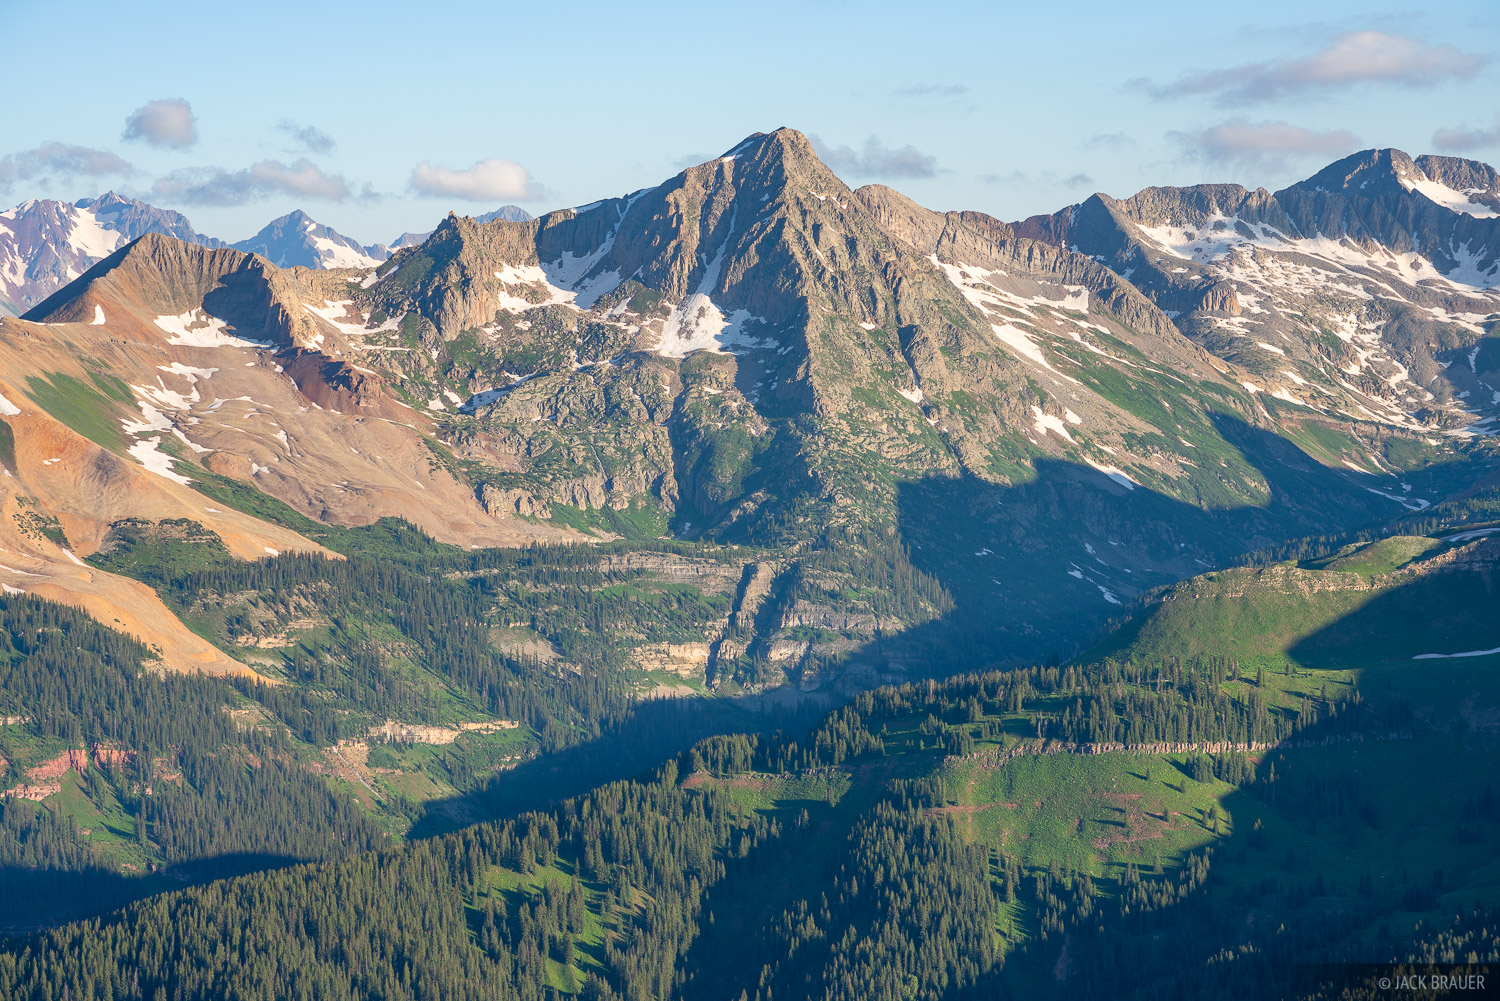 Colorado, Engineer Mountain, Grizzly Peak, San Juan Mountains, photo